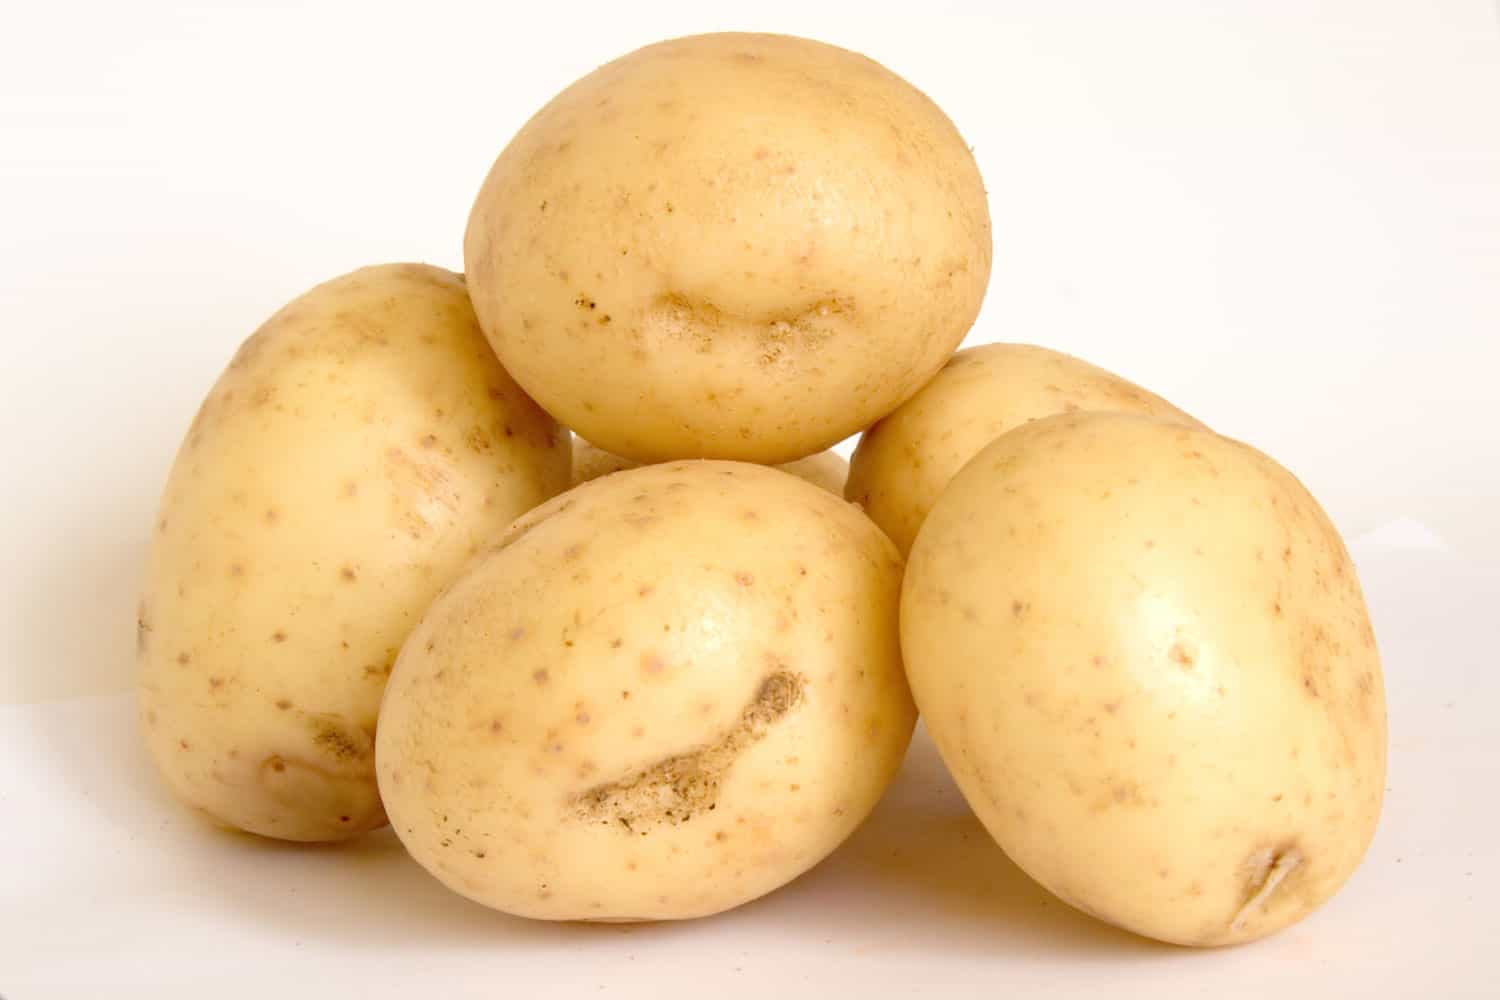 A detailed photo of fresh washed potatoes